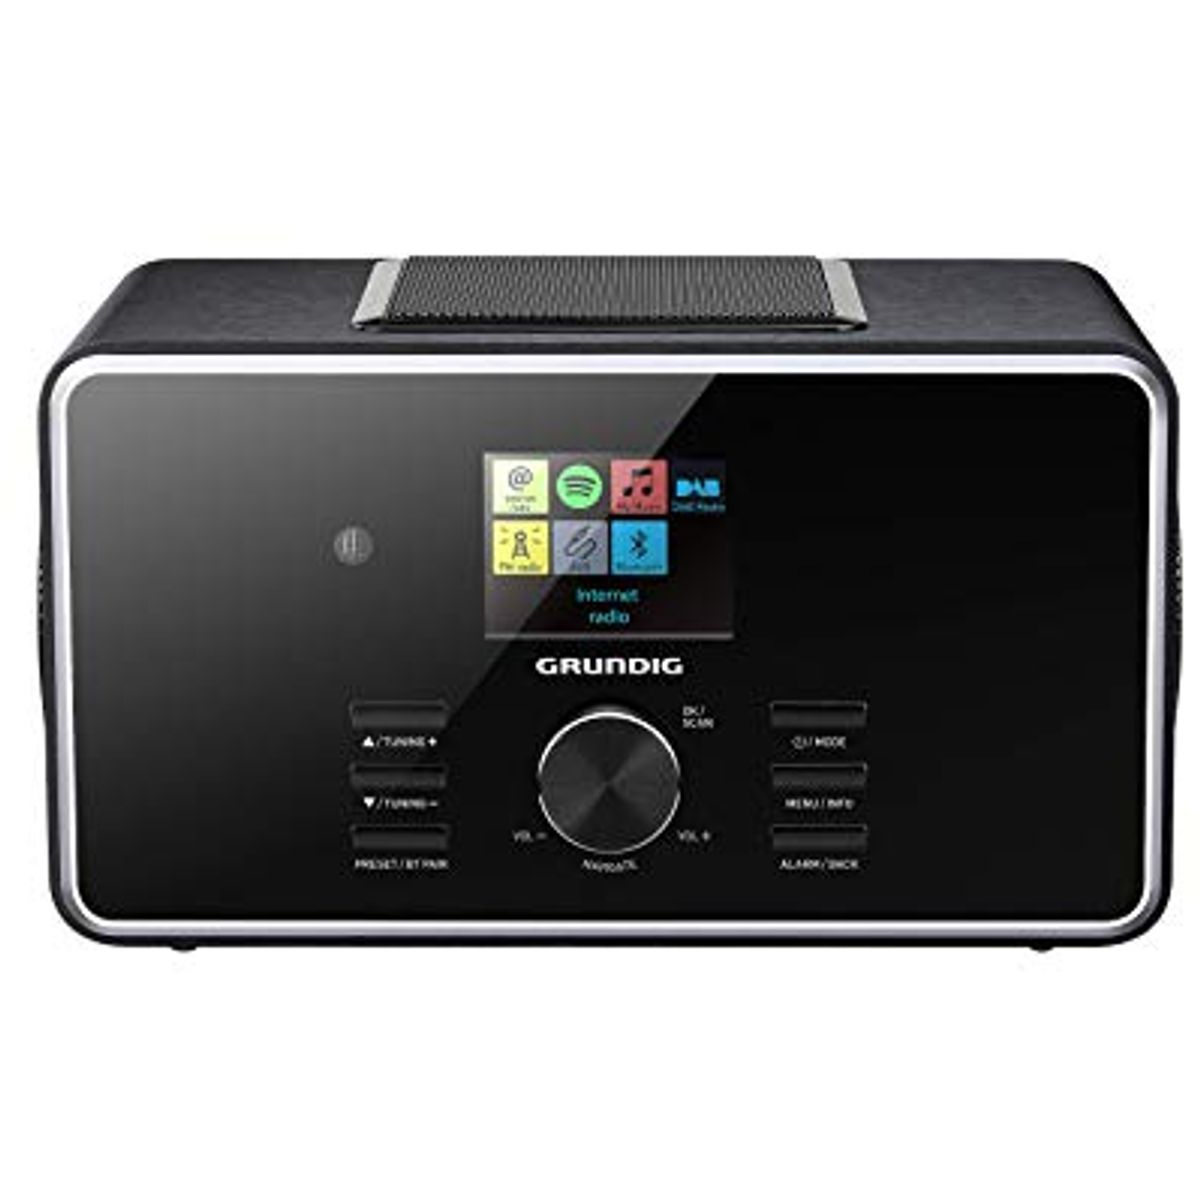 Grundig DTR 6000 2.1 BT DAB+ WEB All-in-one-Internetradio mit Bluetooth